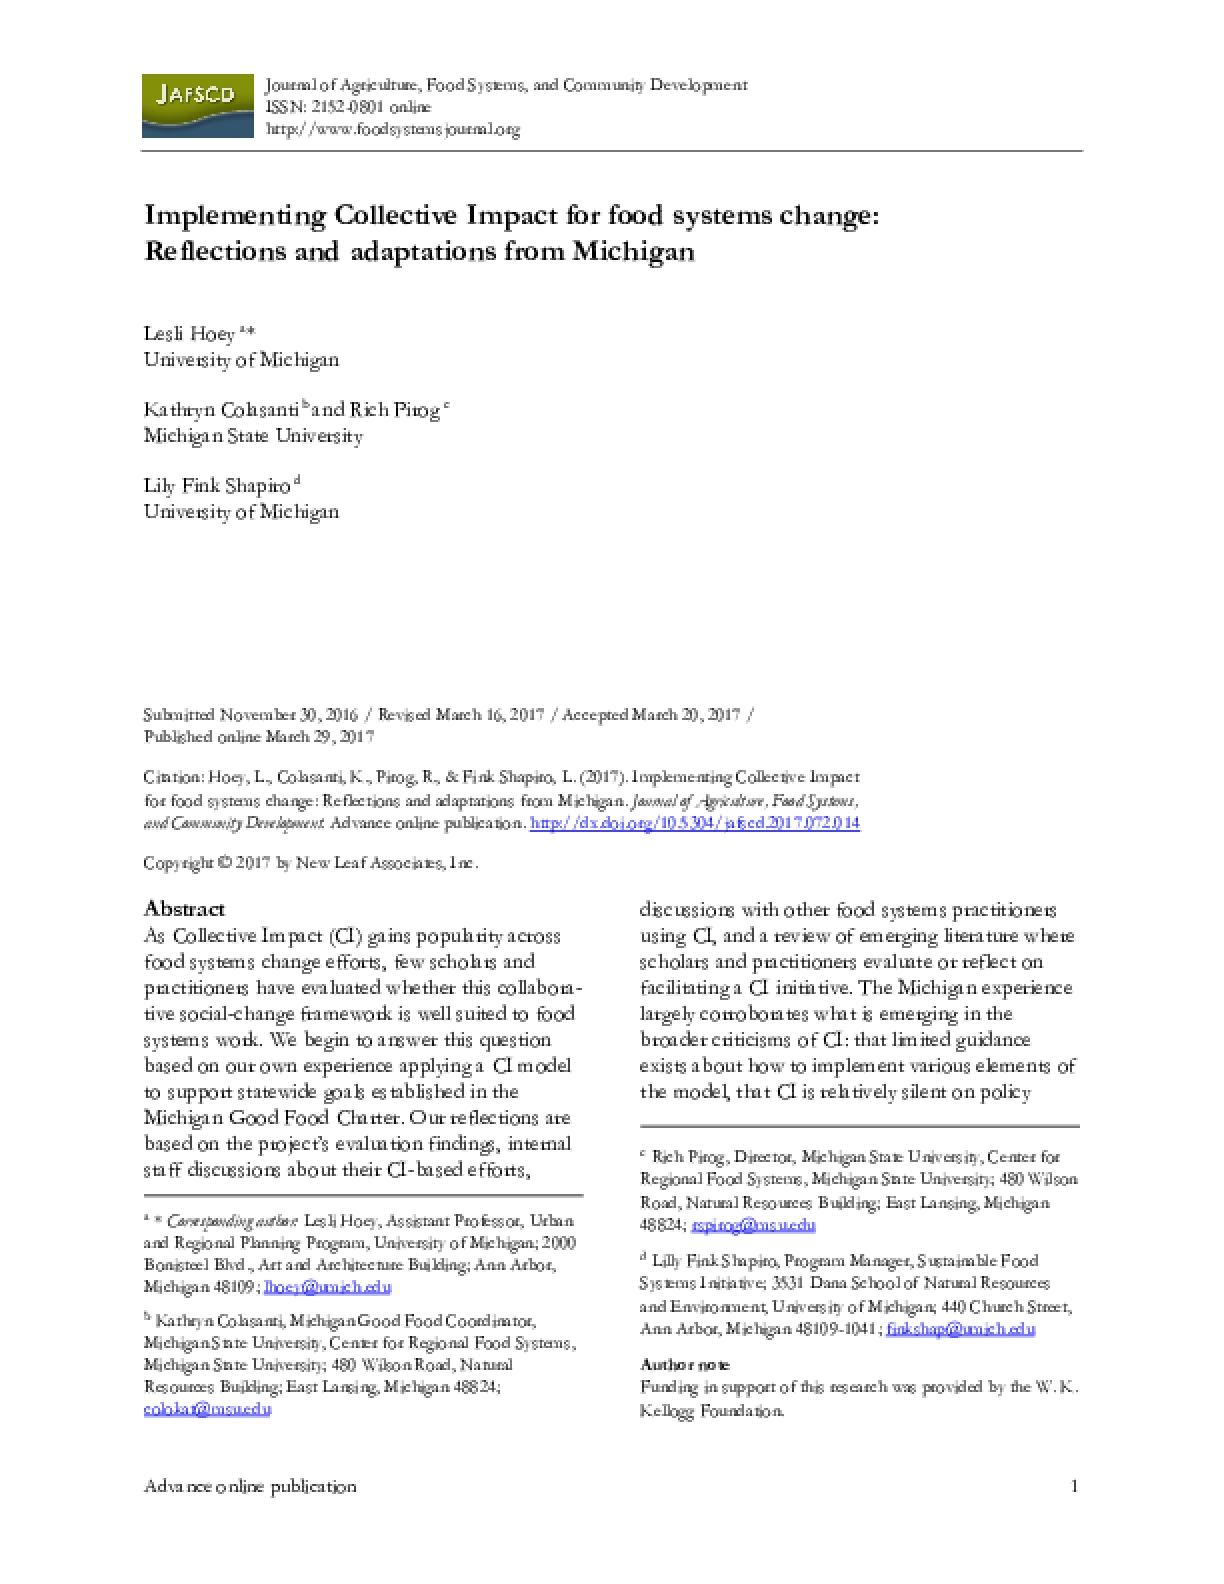 Implementing Collective Impact for Food Systems Change: Reflections and Adaptations from Michigan